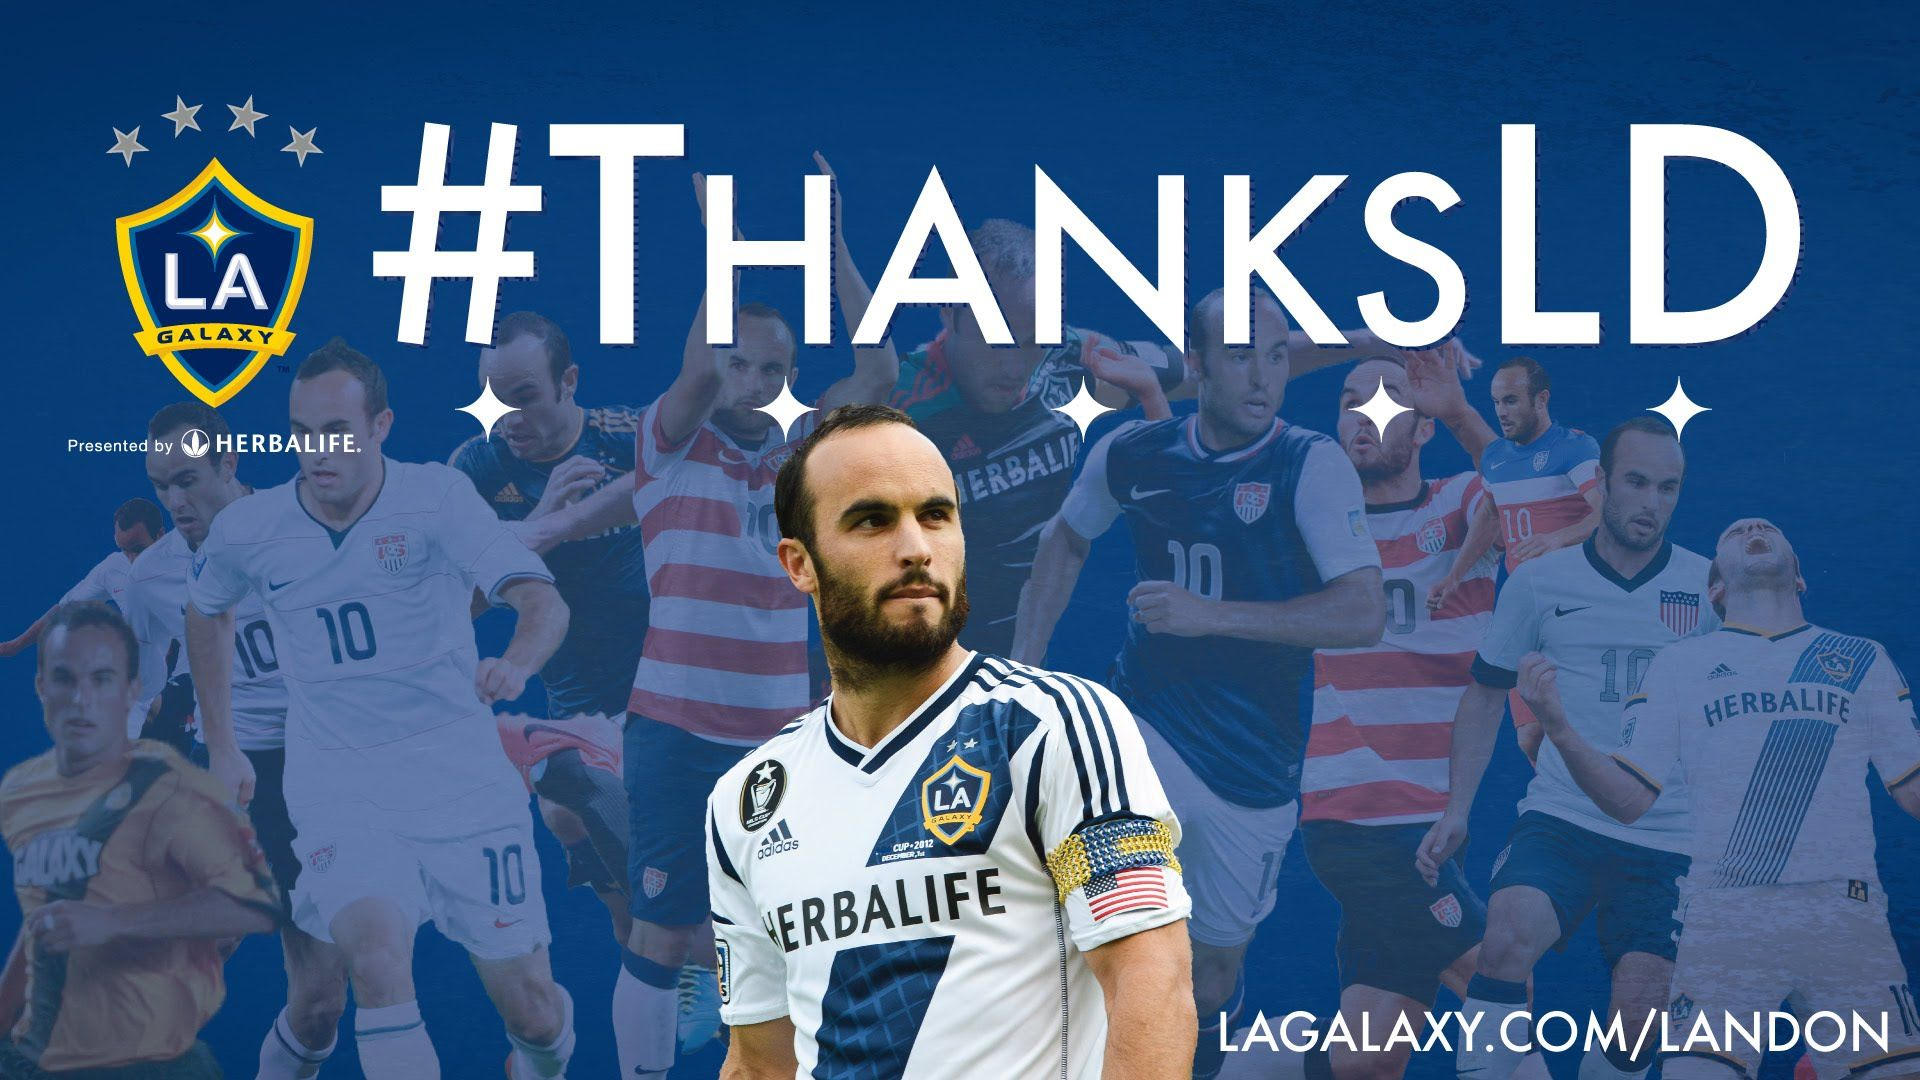 Thanksld Lagalaxy 9ine Followliveshare Landon Donovan Donovan La Galaxy